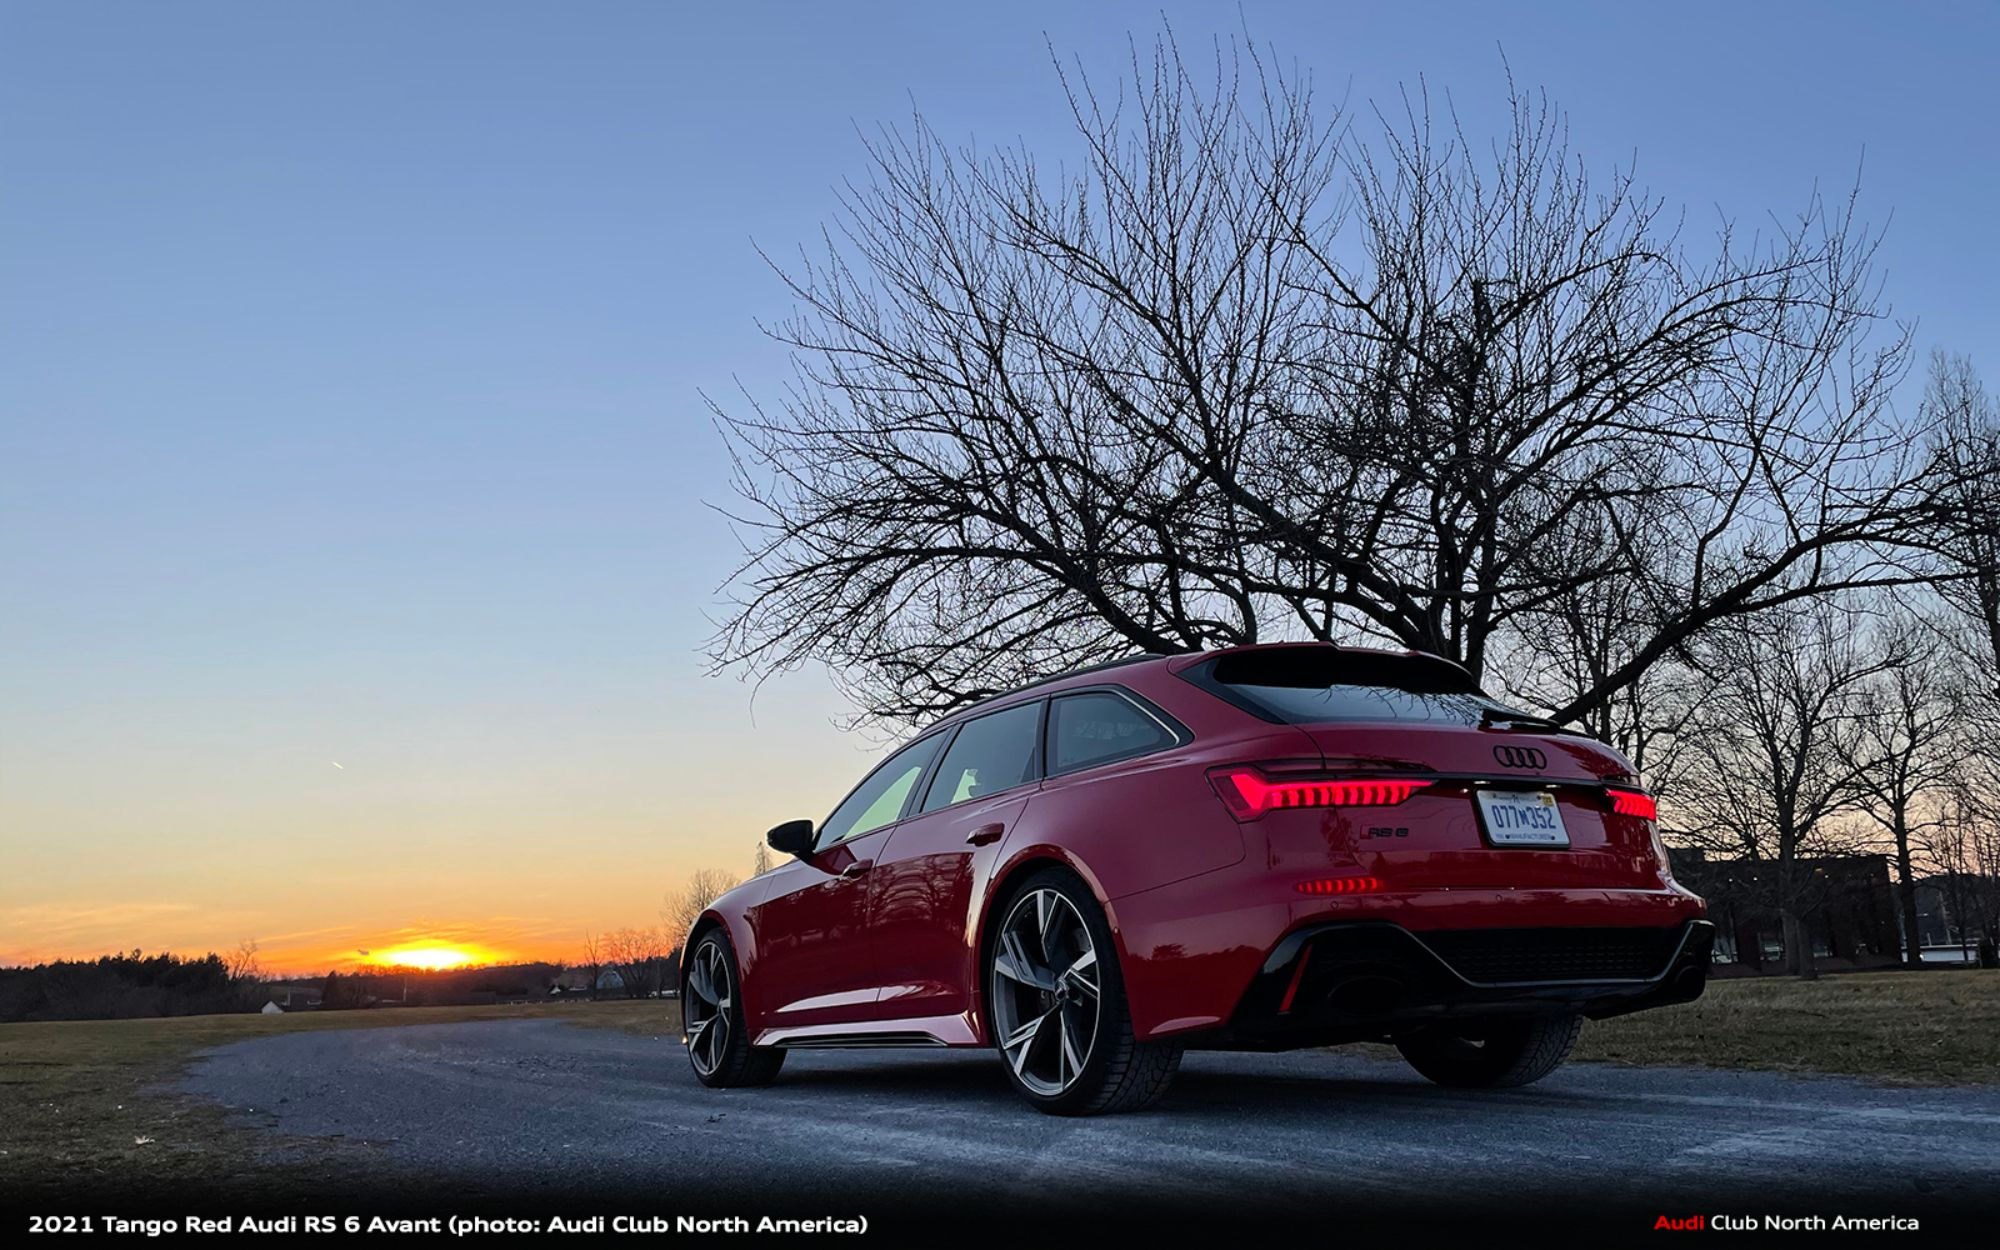 And the Winner of the Audi Club RS 6 Avant Sweepstakes is...